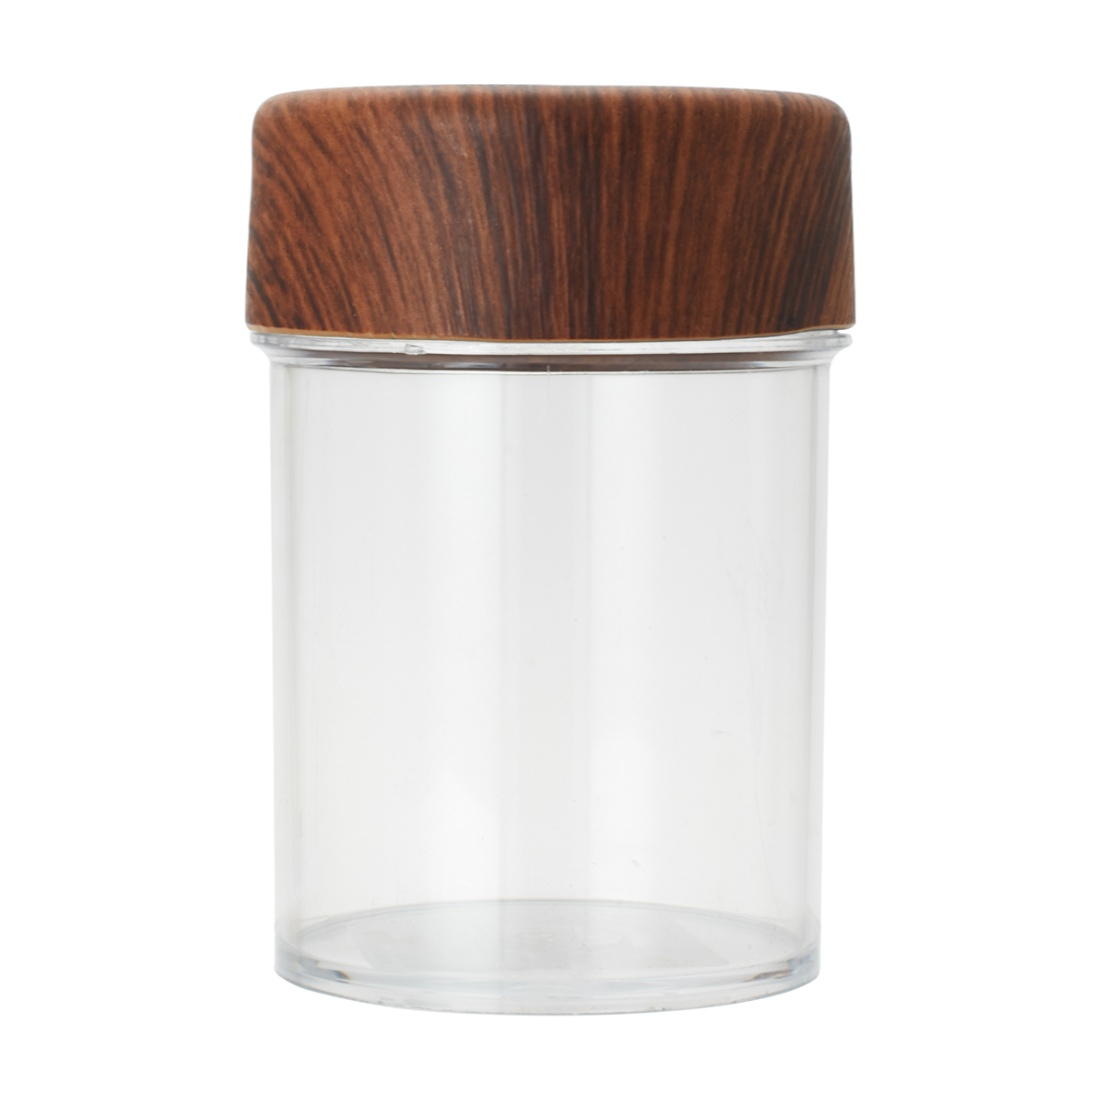 Oak Round Jar 200 Ml Plastic Containers in Wooden Finish Colour by Living Essence